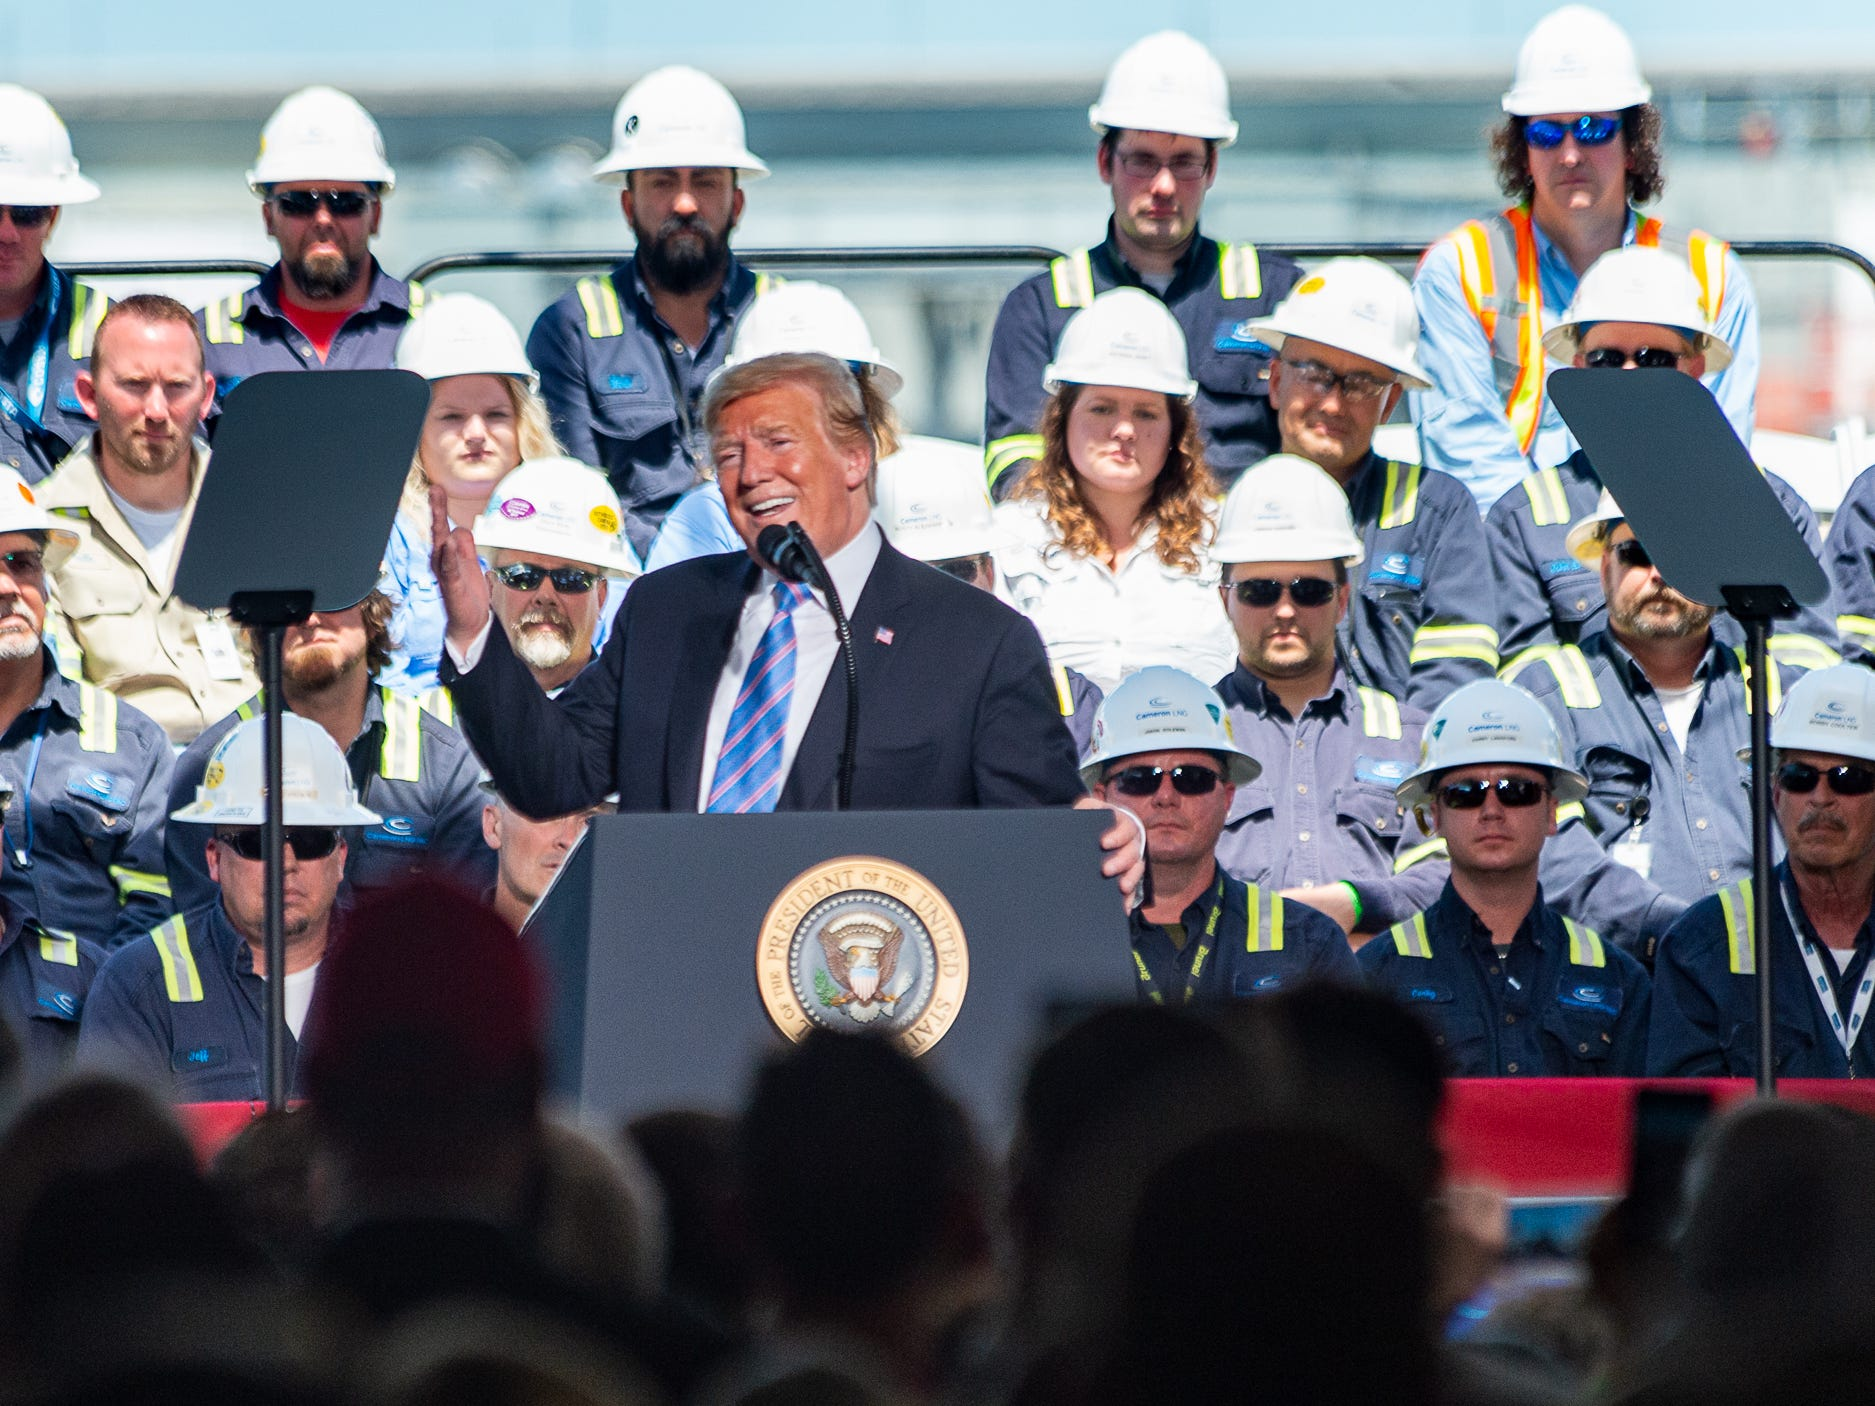 President Donald Trump speaks at Cameron LNG Export Terminal in Hackberry, Louisiana on Tuesday, May 14, 2019.